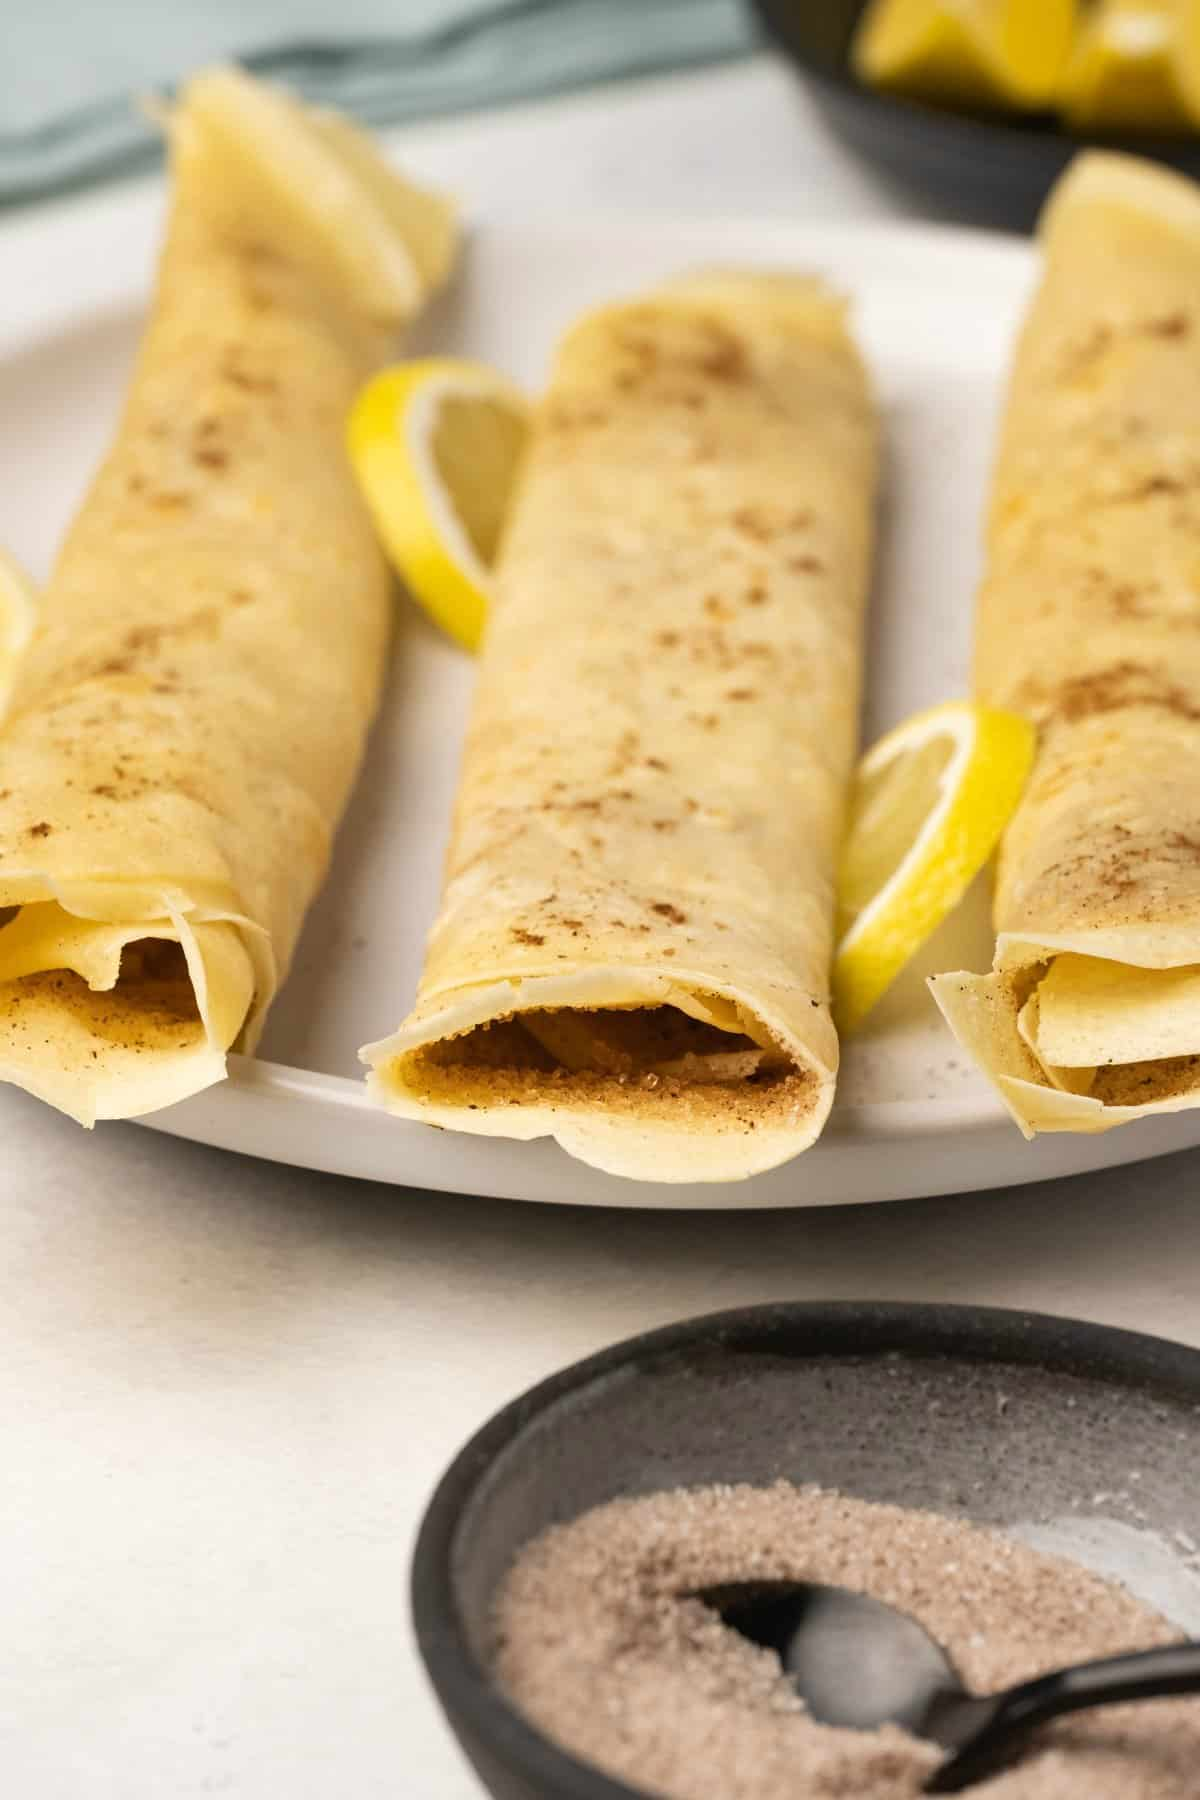 Crepes rolled up on a white plate.